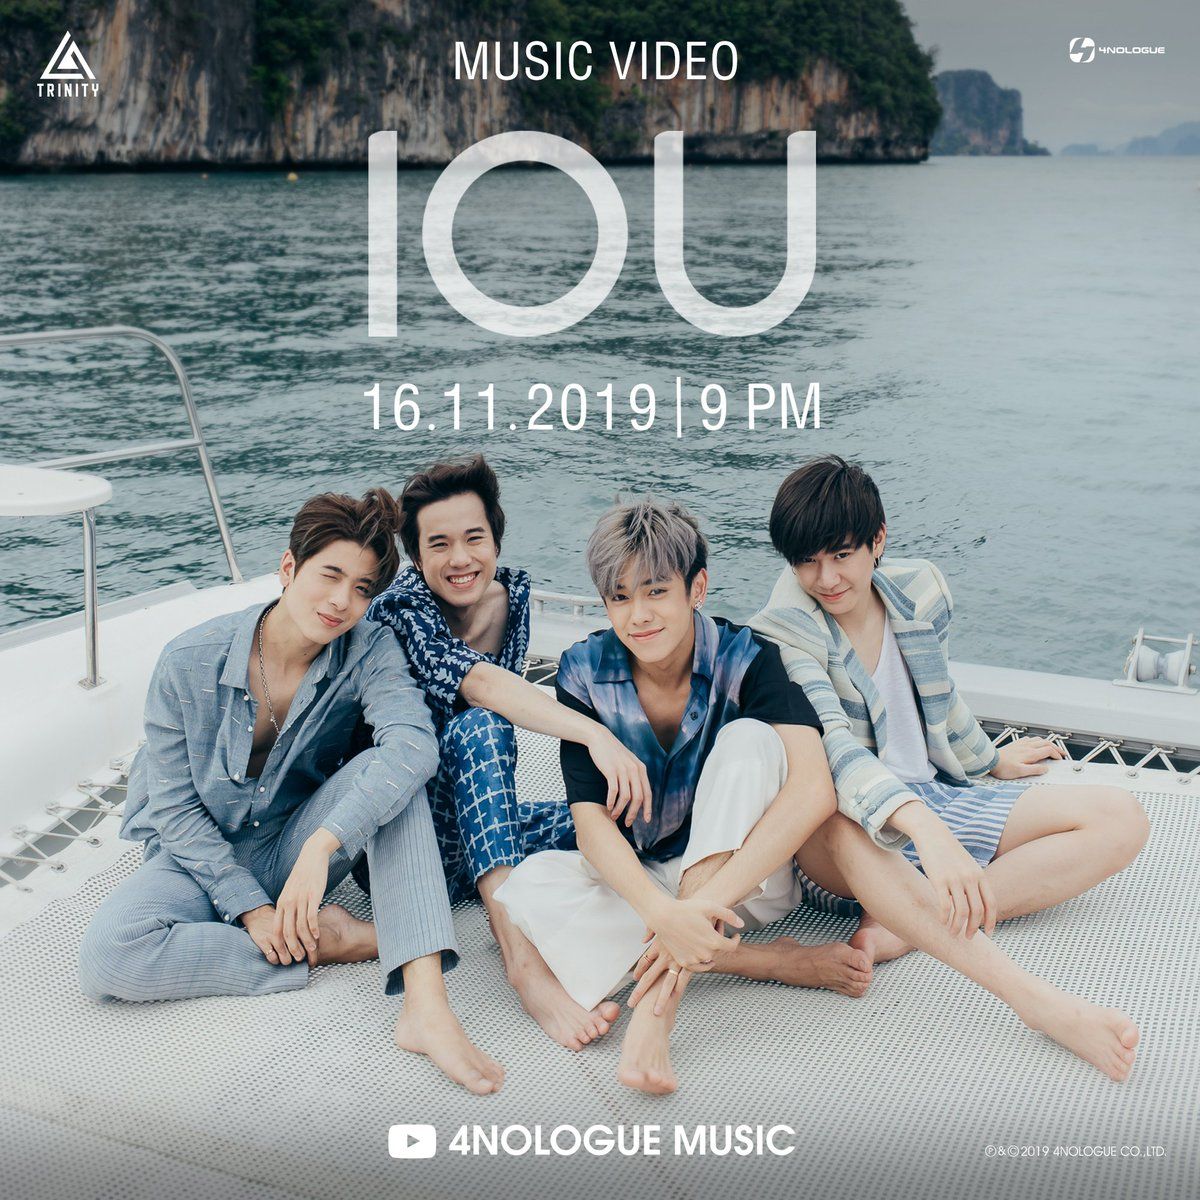 ARE YOU READY TO FALL IN LOVE WITH #TRINITY_TNT   STAY TUNED!   MUSIC VIDEO AVAILABLE ON YOUTUBE : 4NOLOGUE MUSIC l 16.11.2019 l 9PM  TRINITY PREMIERE SHOWCASE STAGE 1 - IOU I'M IN LOVE WITH YOU l 16.11.2019 l 6.04PM l AT UNION HALL 2  #TRINITY_IOU #4NOLOGUEMUSIC #4NOLOGUE<br>http://pic.twitter.com/40V686UQ8i